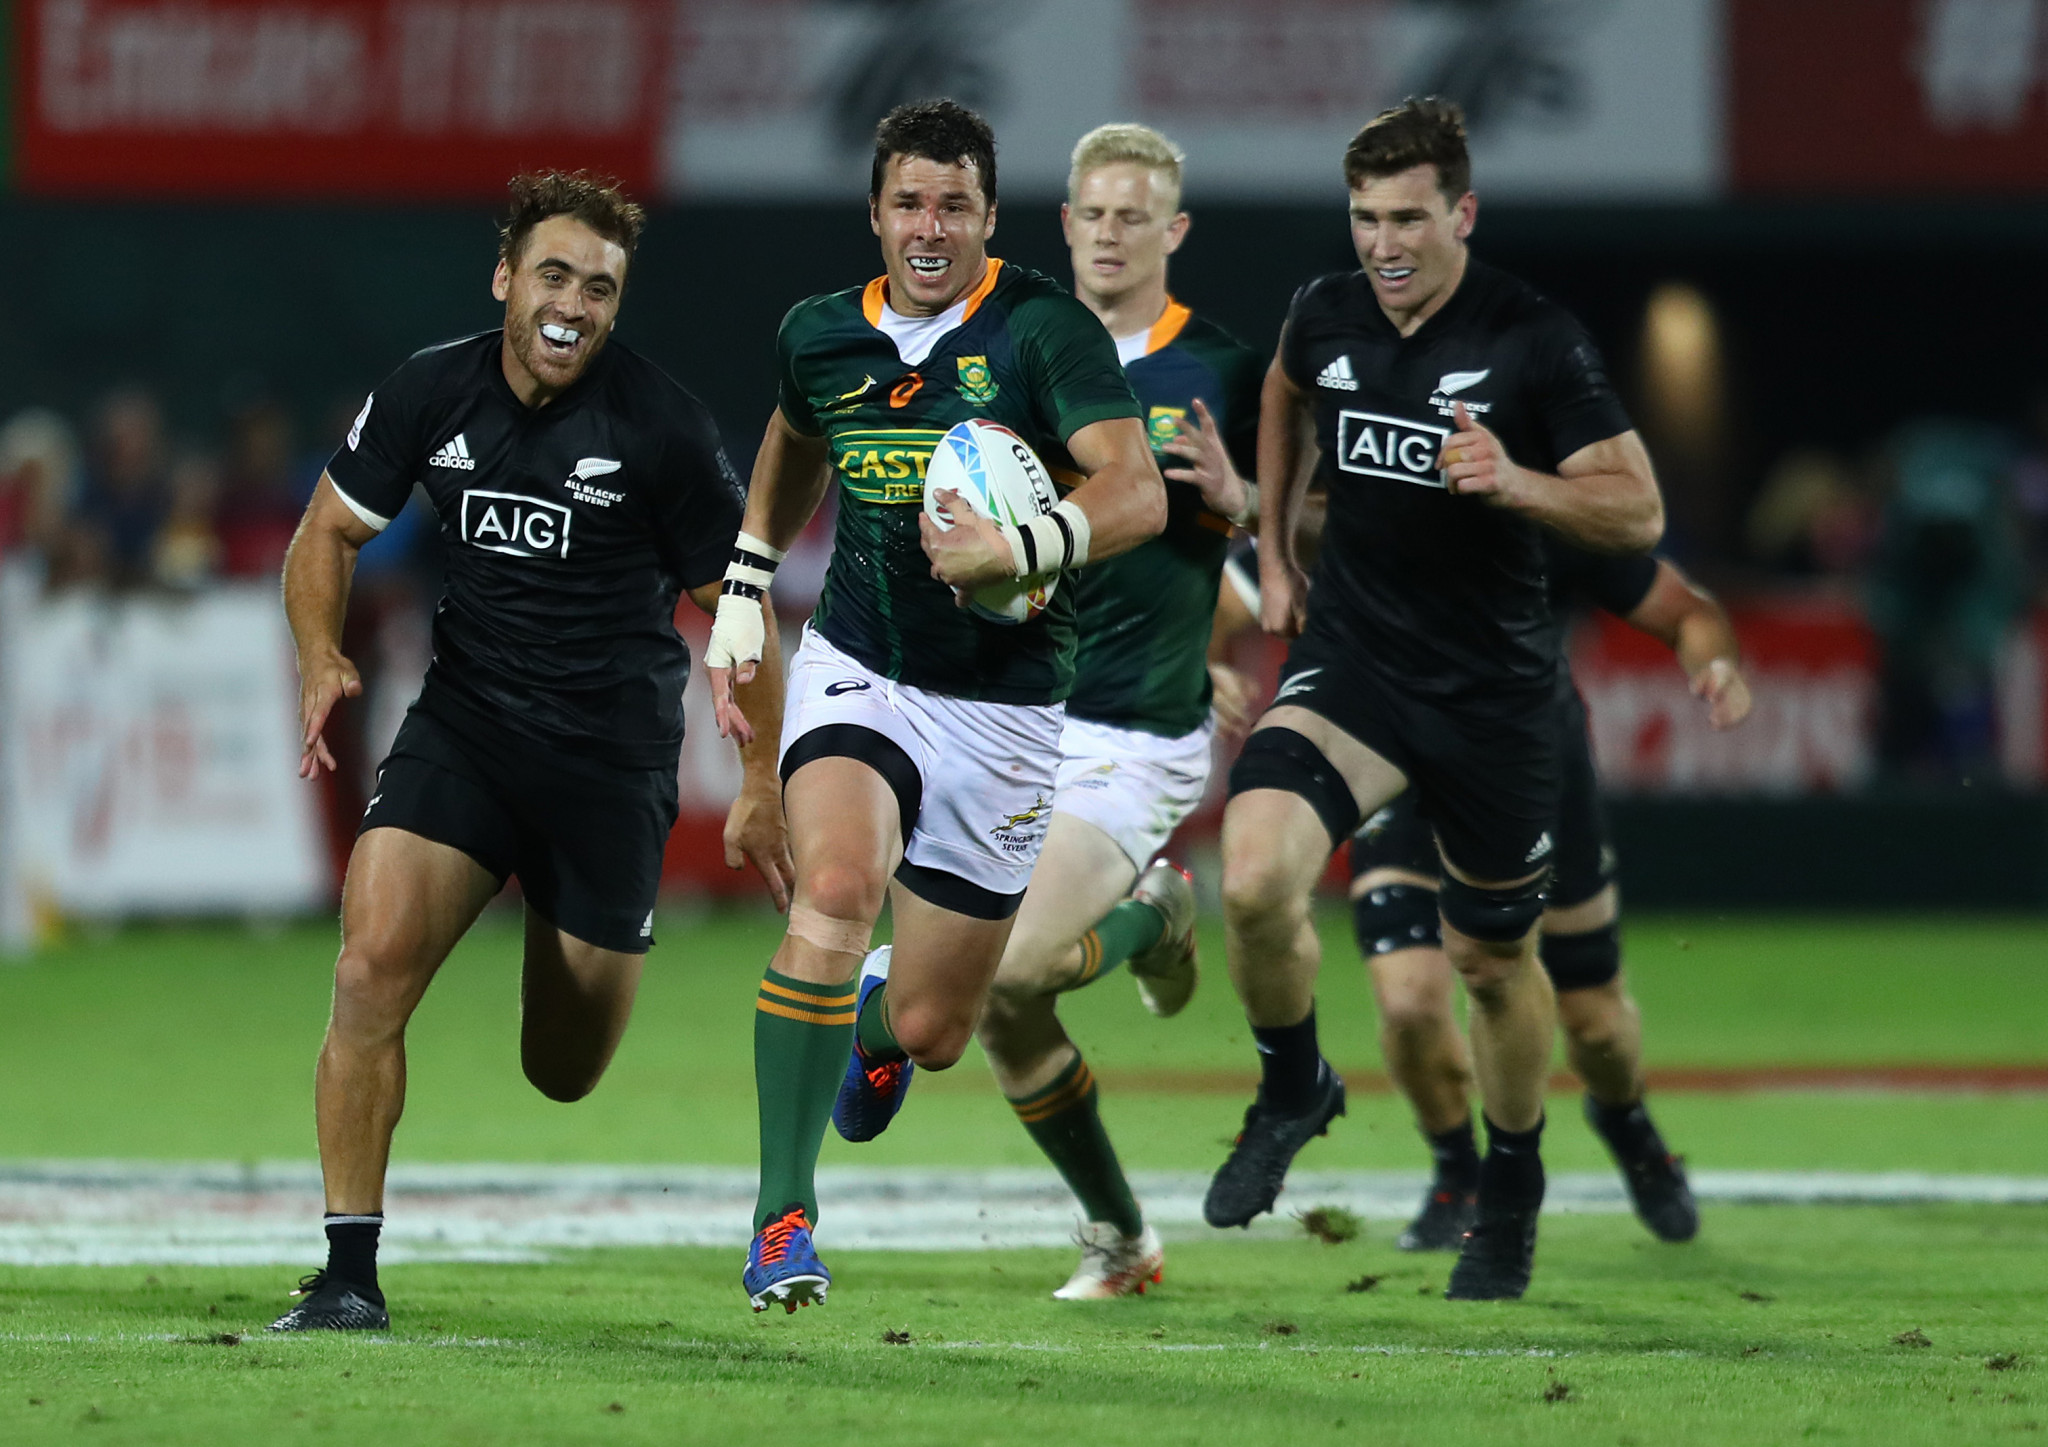 South Africa blitz New Zealand to win Dubai World Rugby Sevens Series